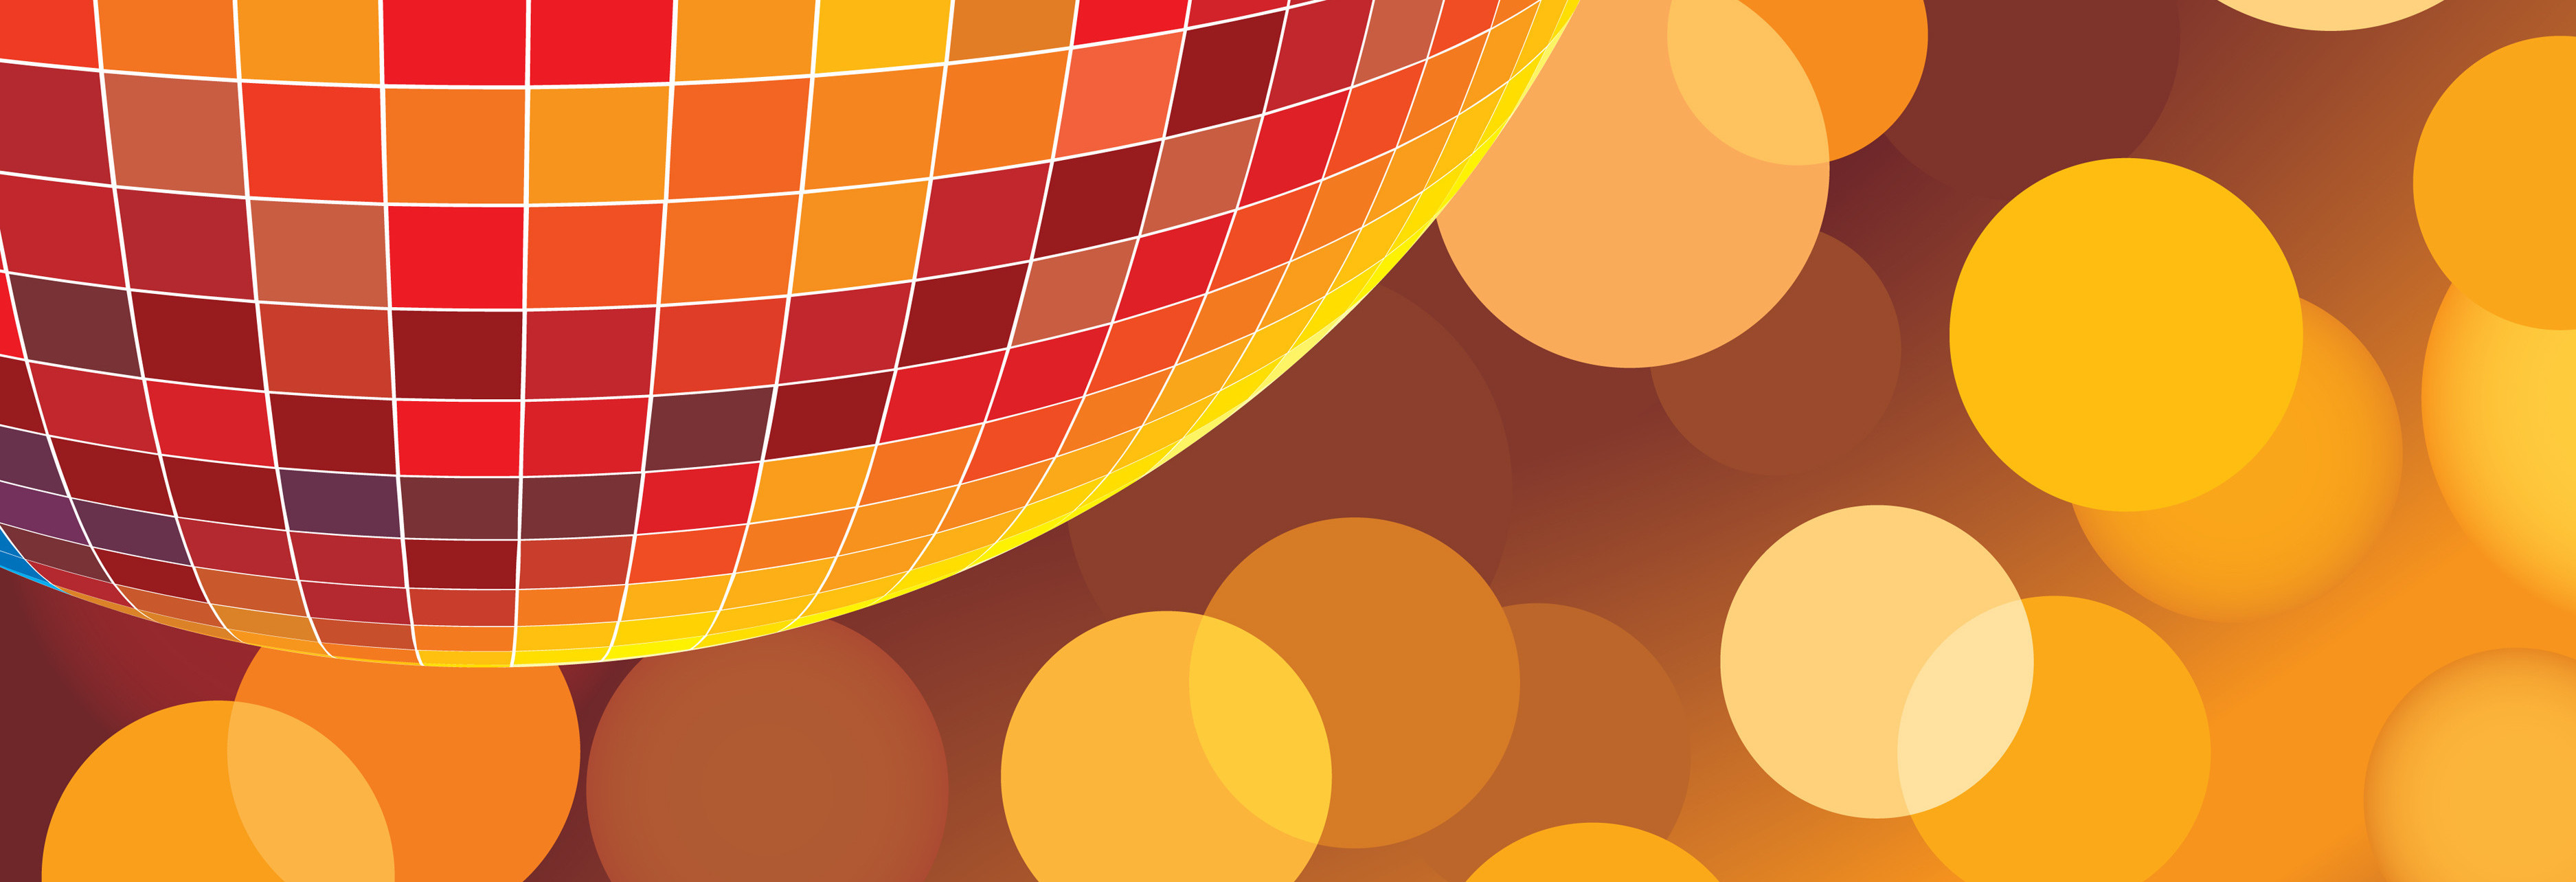 Party disco background with glowing lights